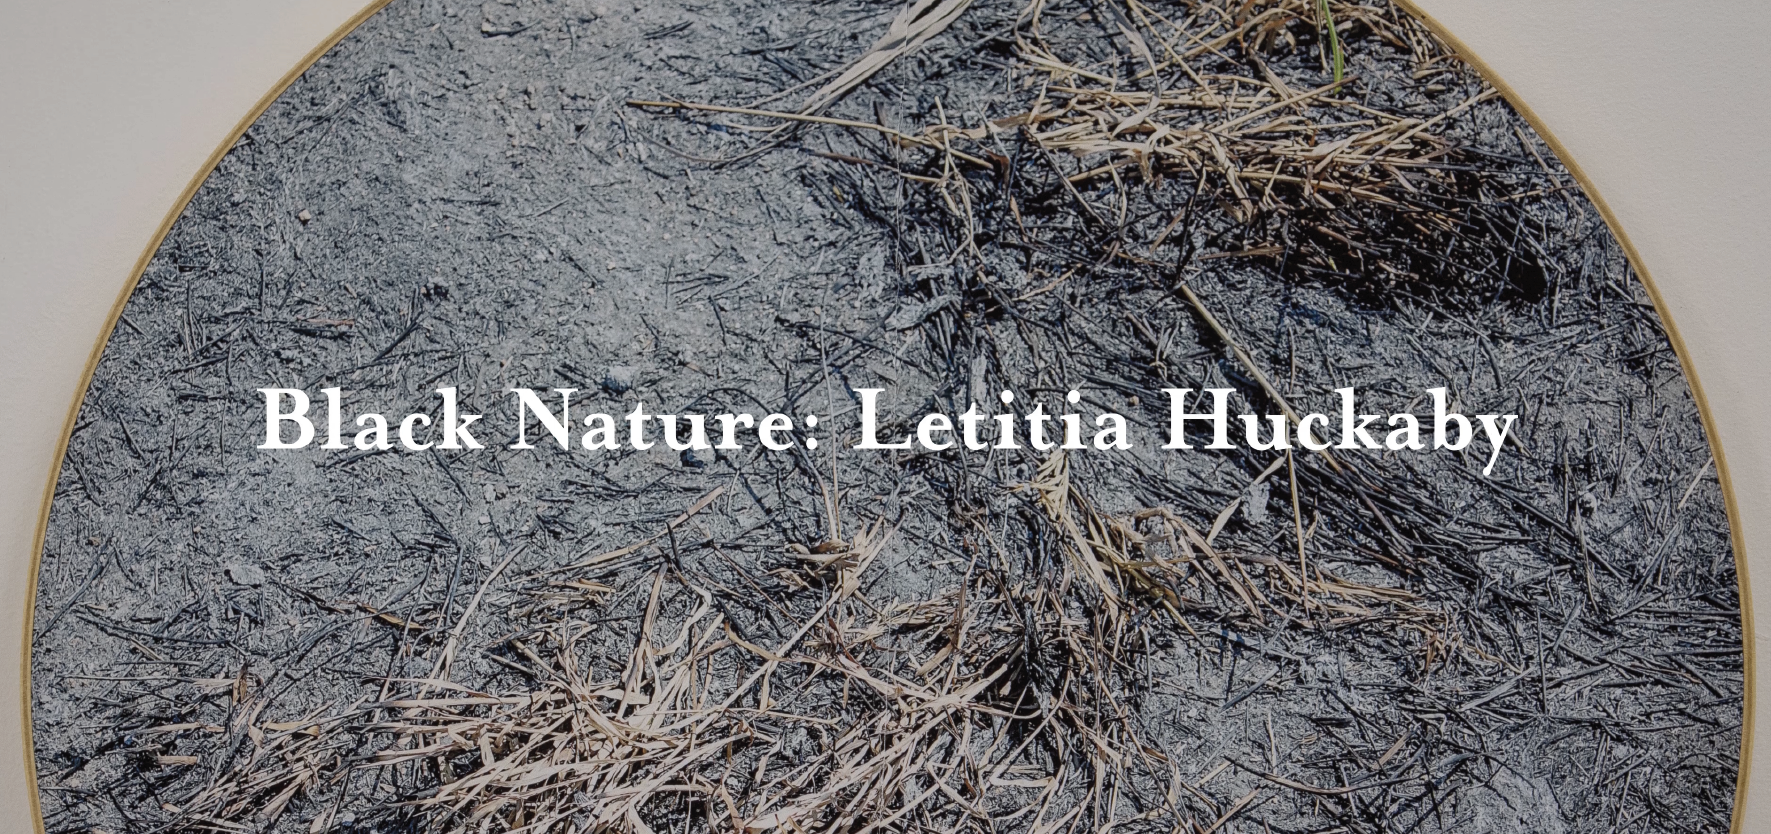 "Virtual Tour of ""Black Nature: Letitia Huckaby"""